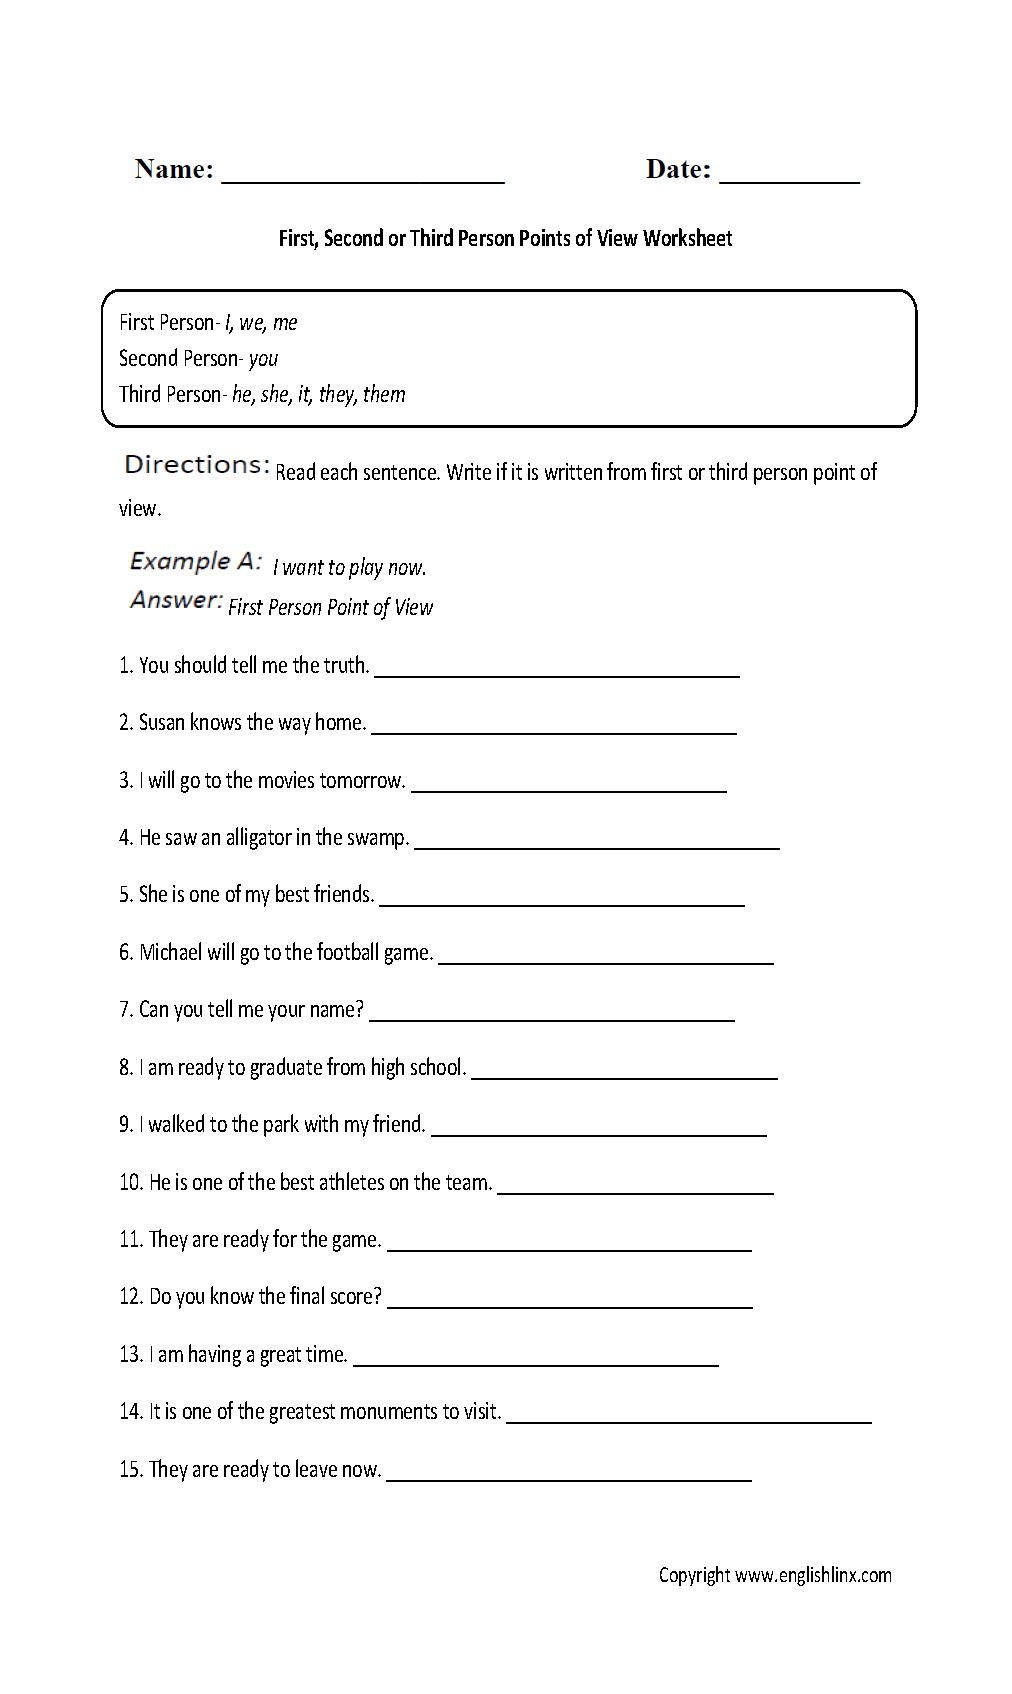 Weirdmailus  Marvelous Englishlinxcom  Point Of View Worksheets With Fair Point Of View Worksheet With Extraordinary Worksheets On Decimals For Grade  Also Multiplication Worksheets For Kindergarten In Addition Science Worksheet For Grade  And Free Timeline Worksheets As Well As Angles Worksheet For Grade  Additionally Grade  Math Word Problems Worksheets From Englishlinxcom With Weirdmailus  Fair Englishlinxcom  Point Of View Worksheets With Extraordinary Point Of View Worksheet And Marvelous Worksheets On Decimals For Grade  Also Multiplication Worksheets For Kindergarten In Addition Science Worksheet For Grade  From Englishlinxcom